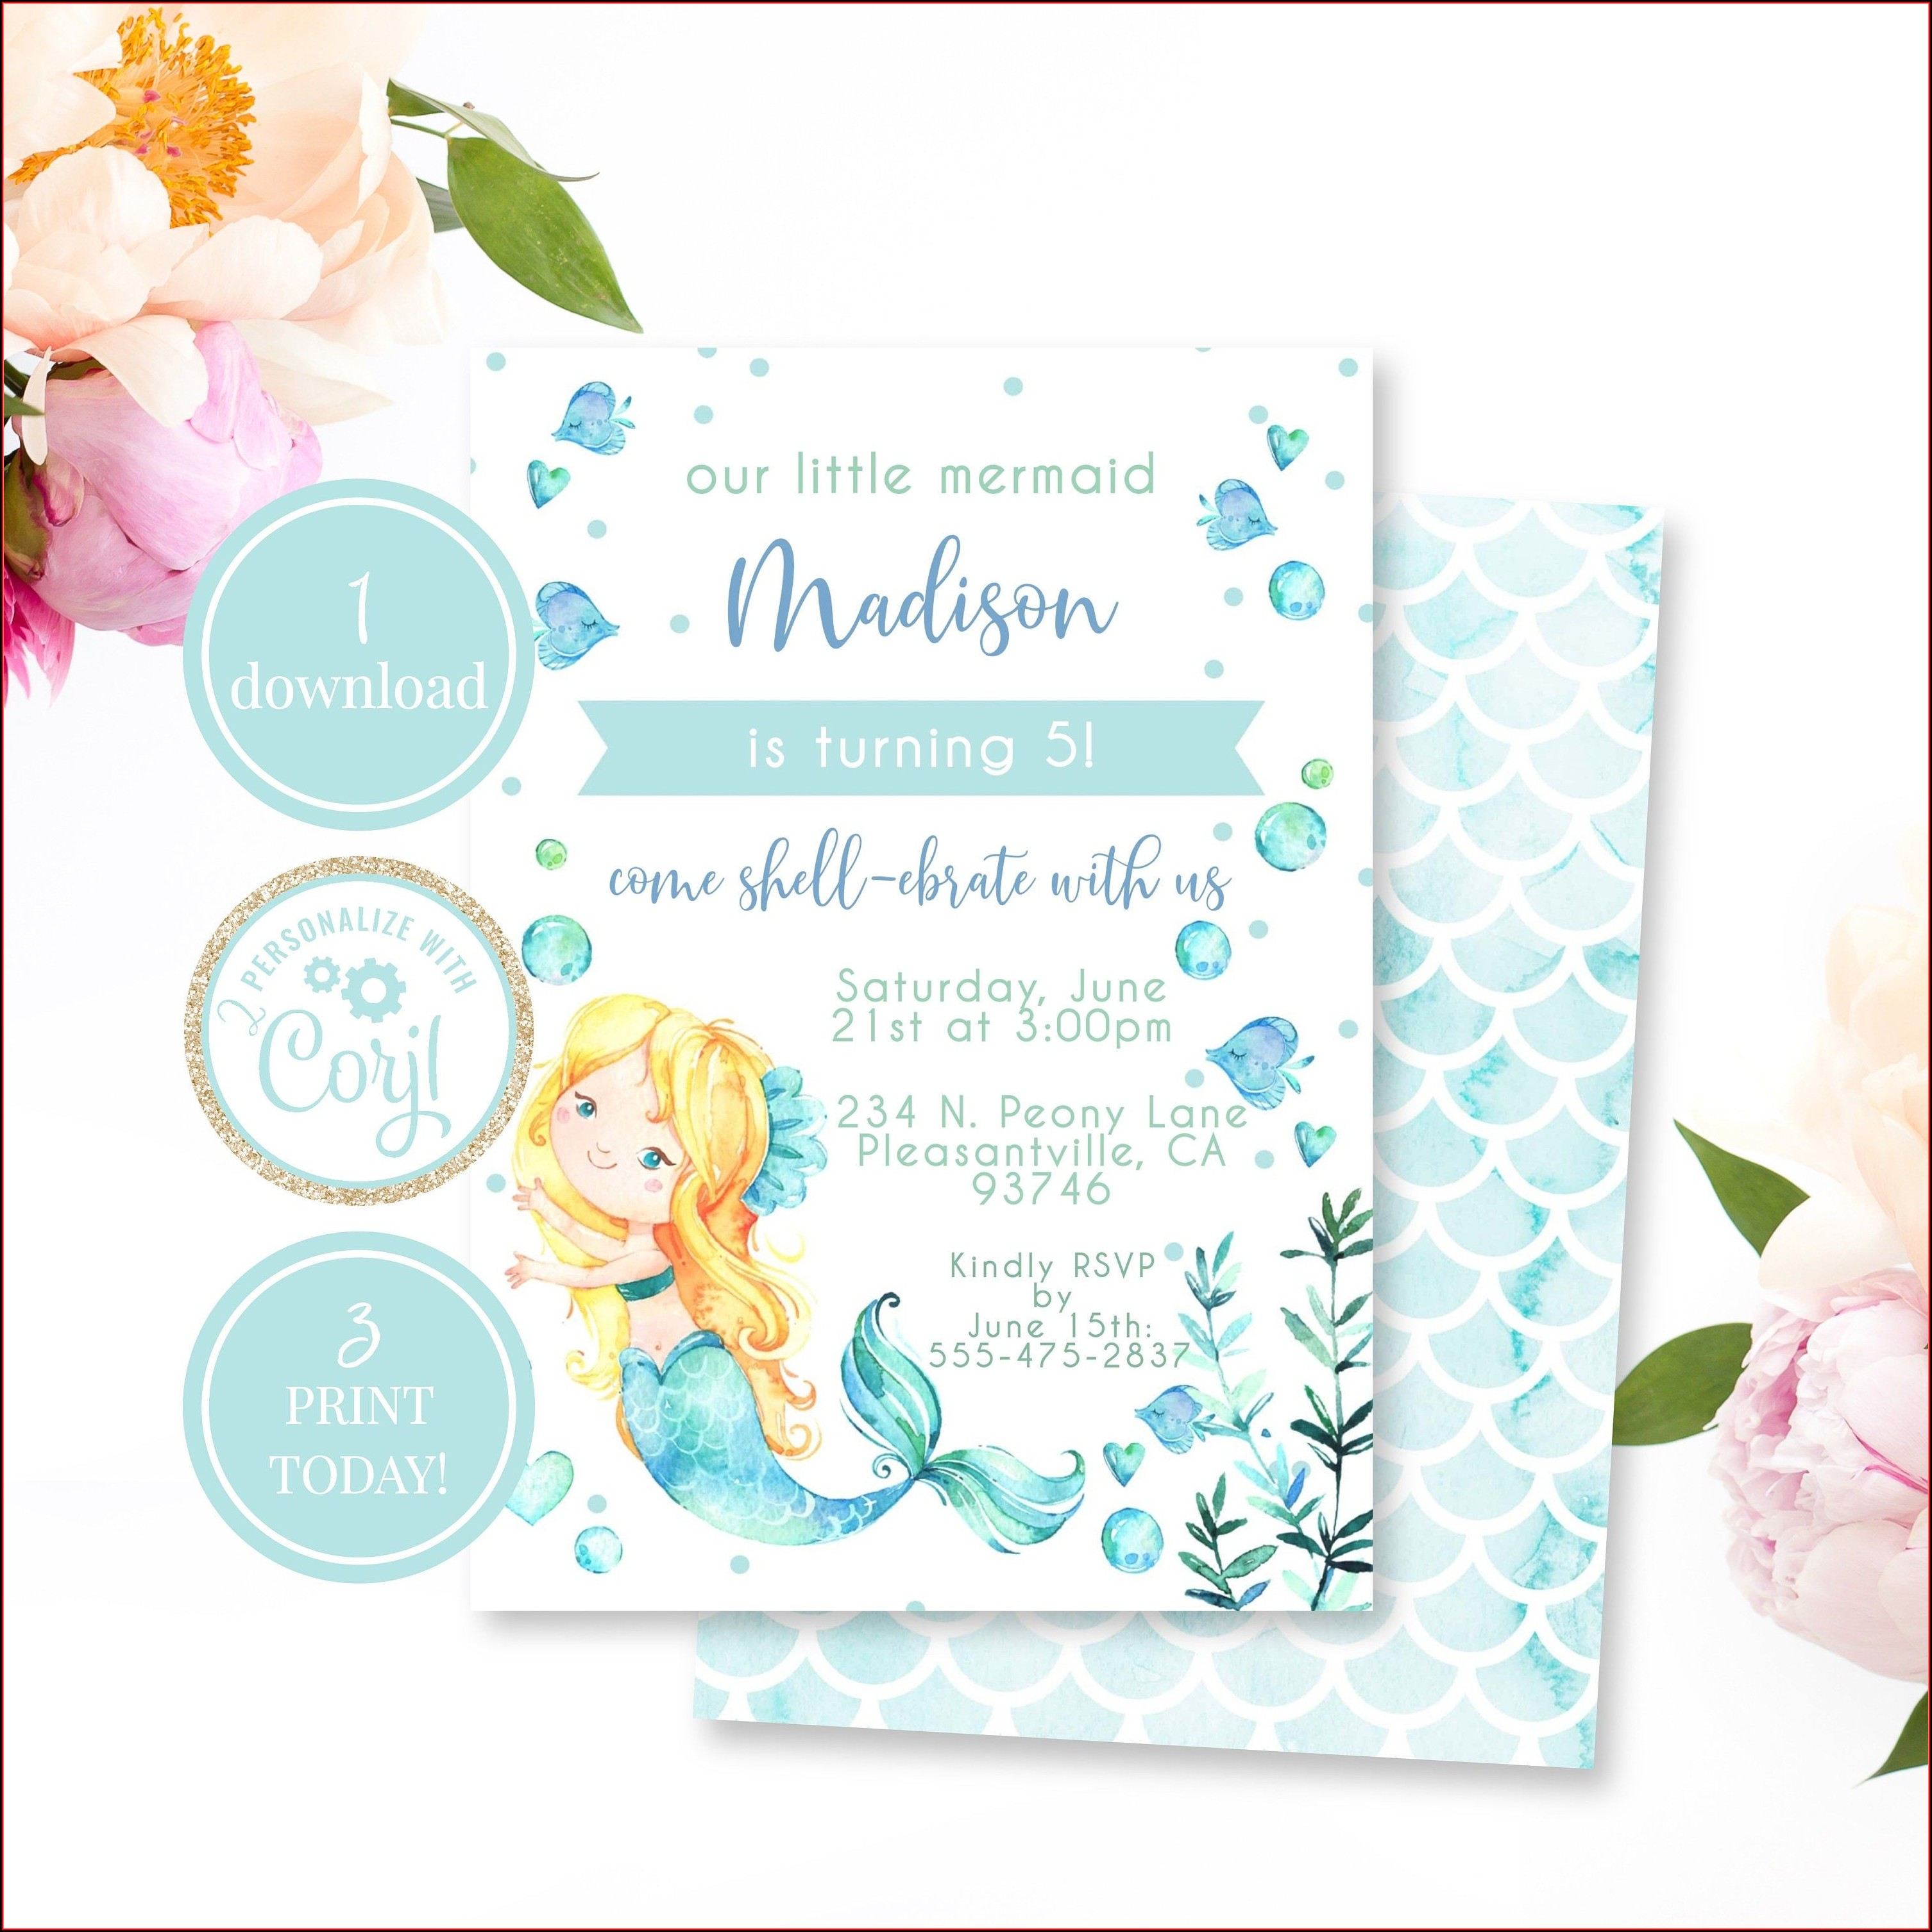 Mermaid Birthday Invitation Template